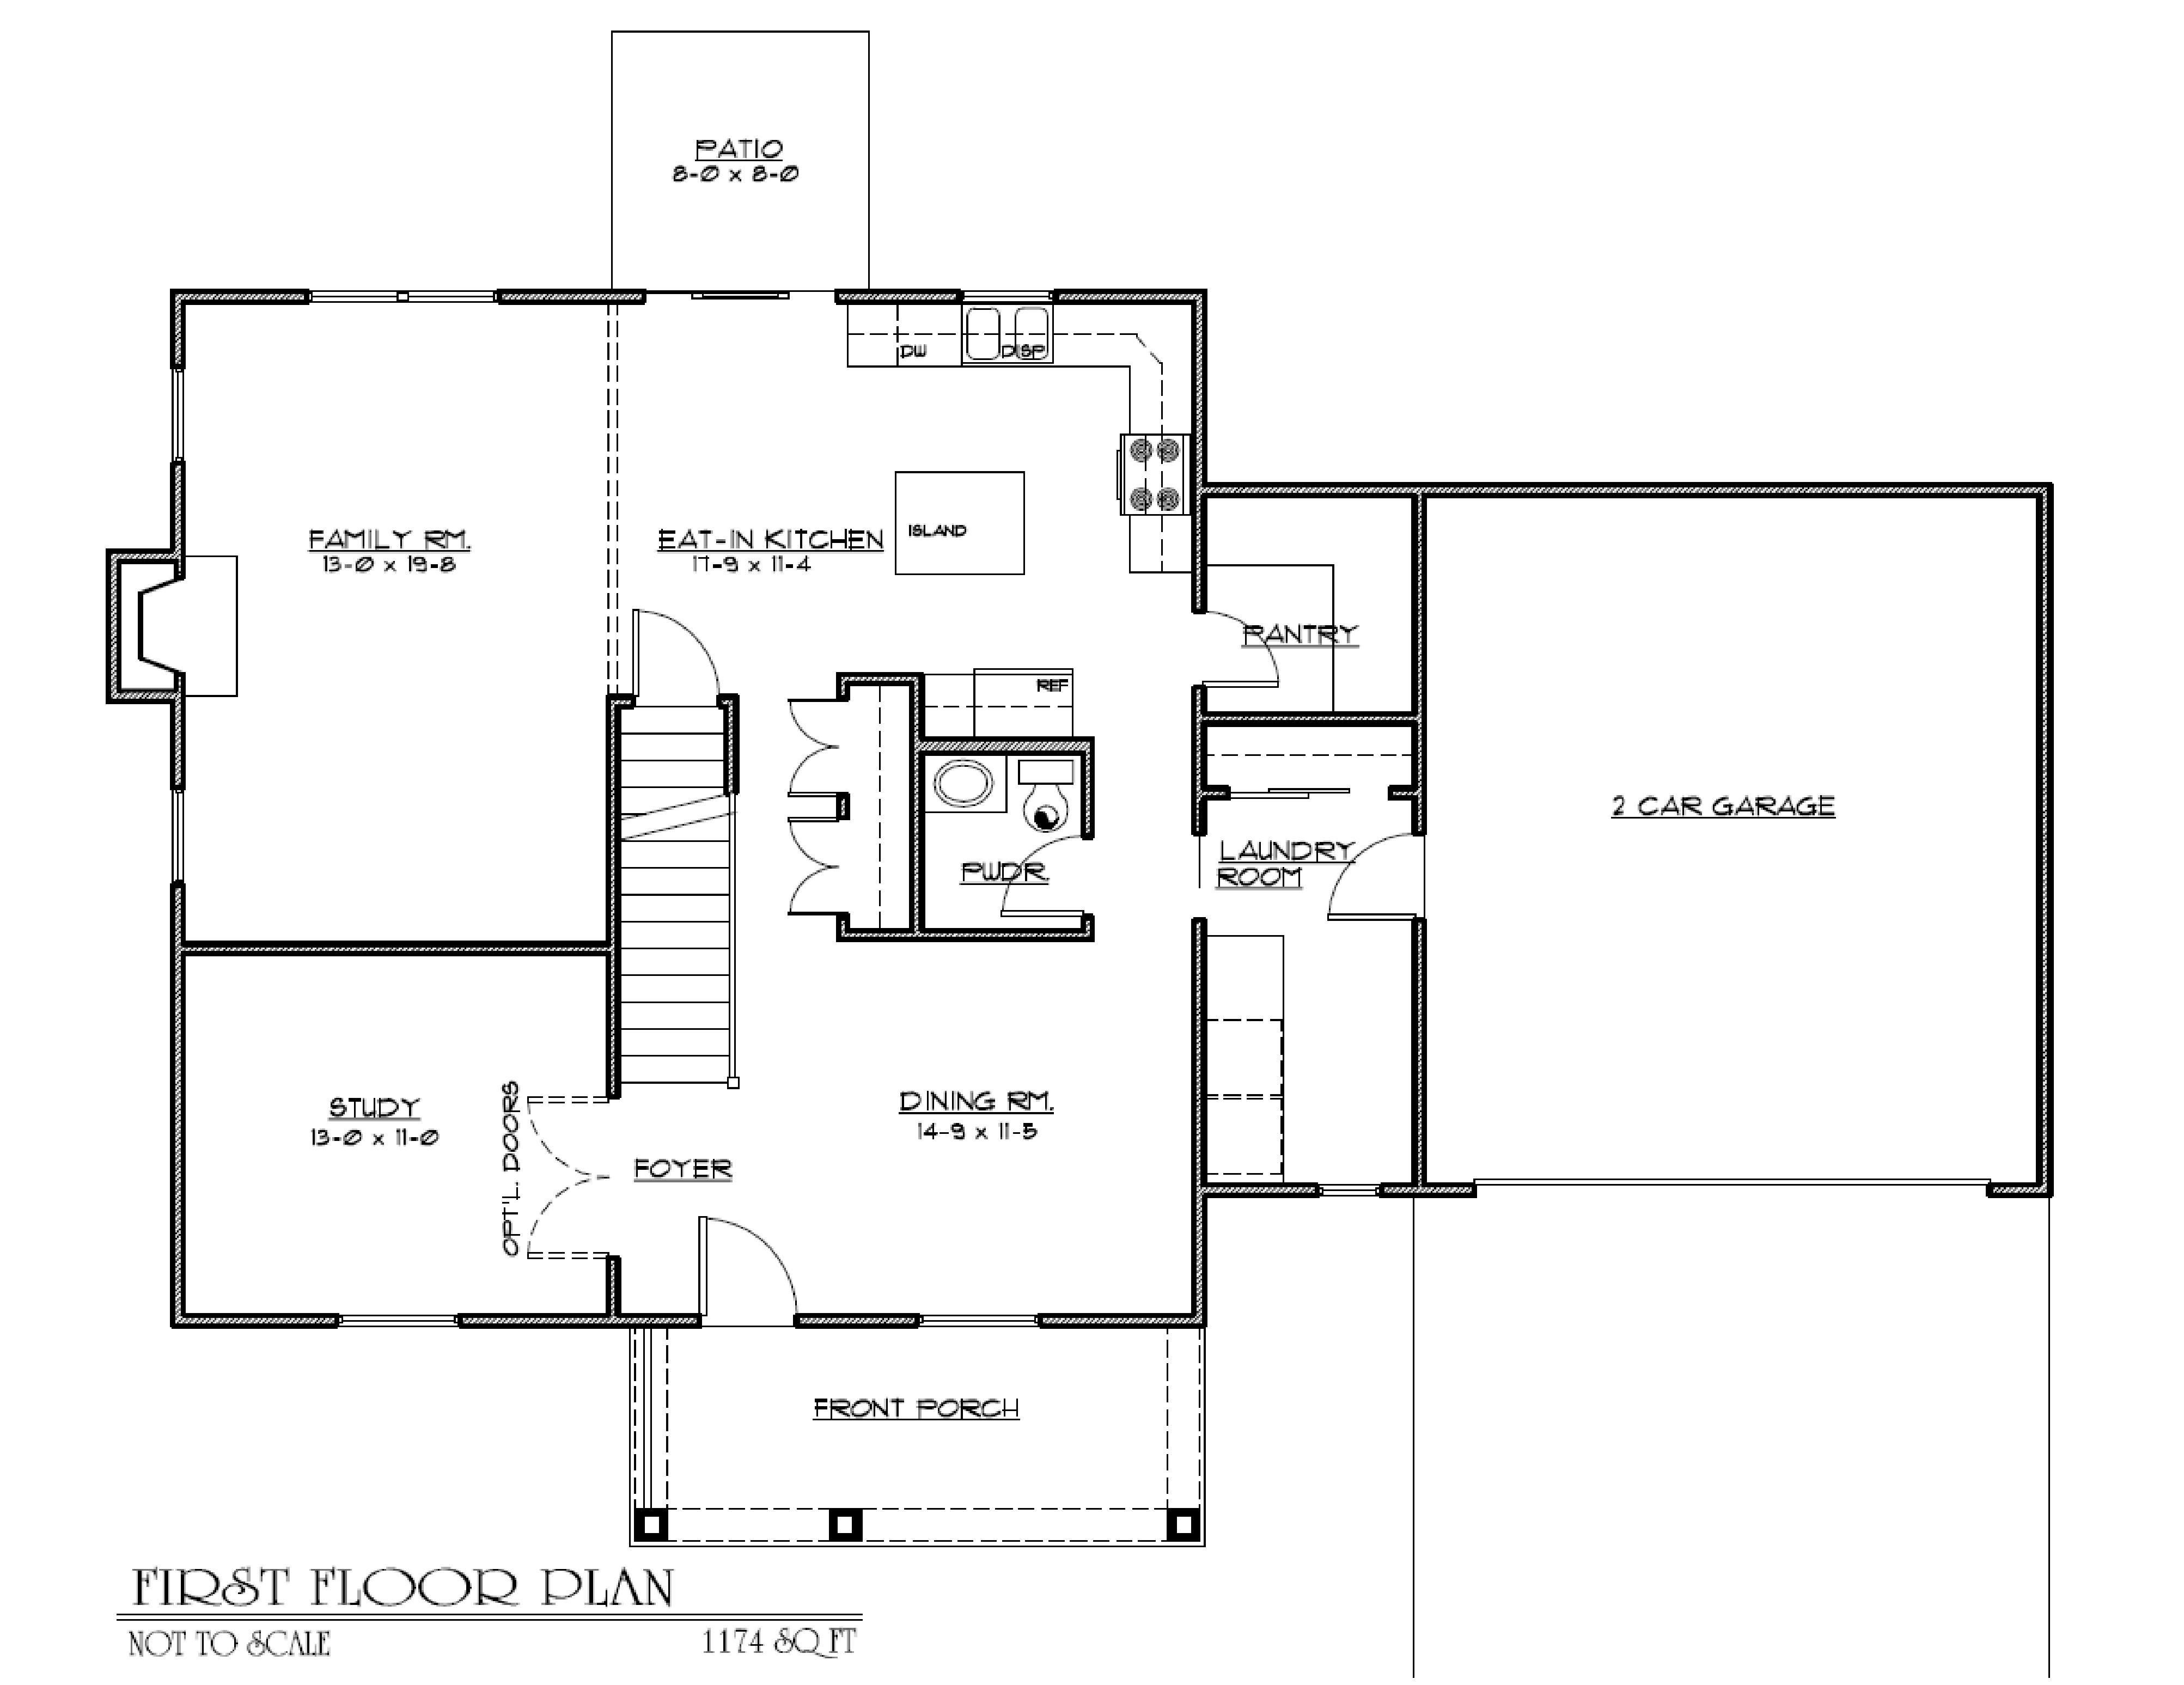 Enjoyable 17 Best Images About Best Of Design House Plans Home Interior Largest Home Design Picture Inspirations Pitcheantrous